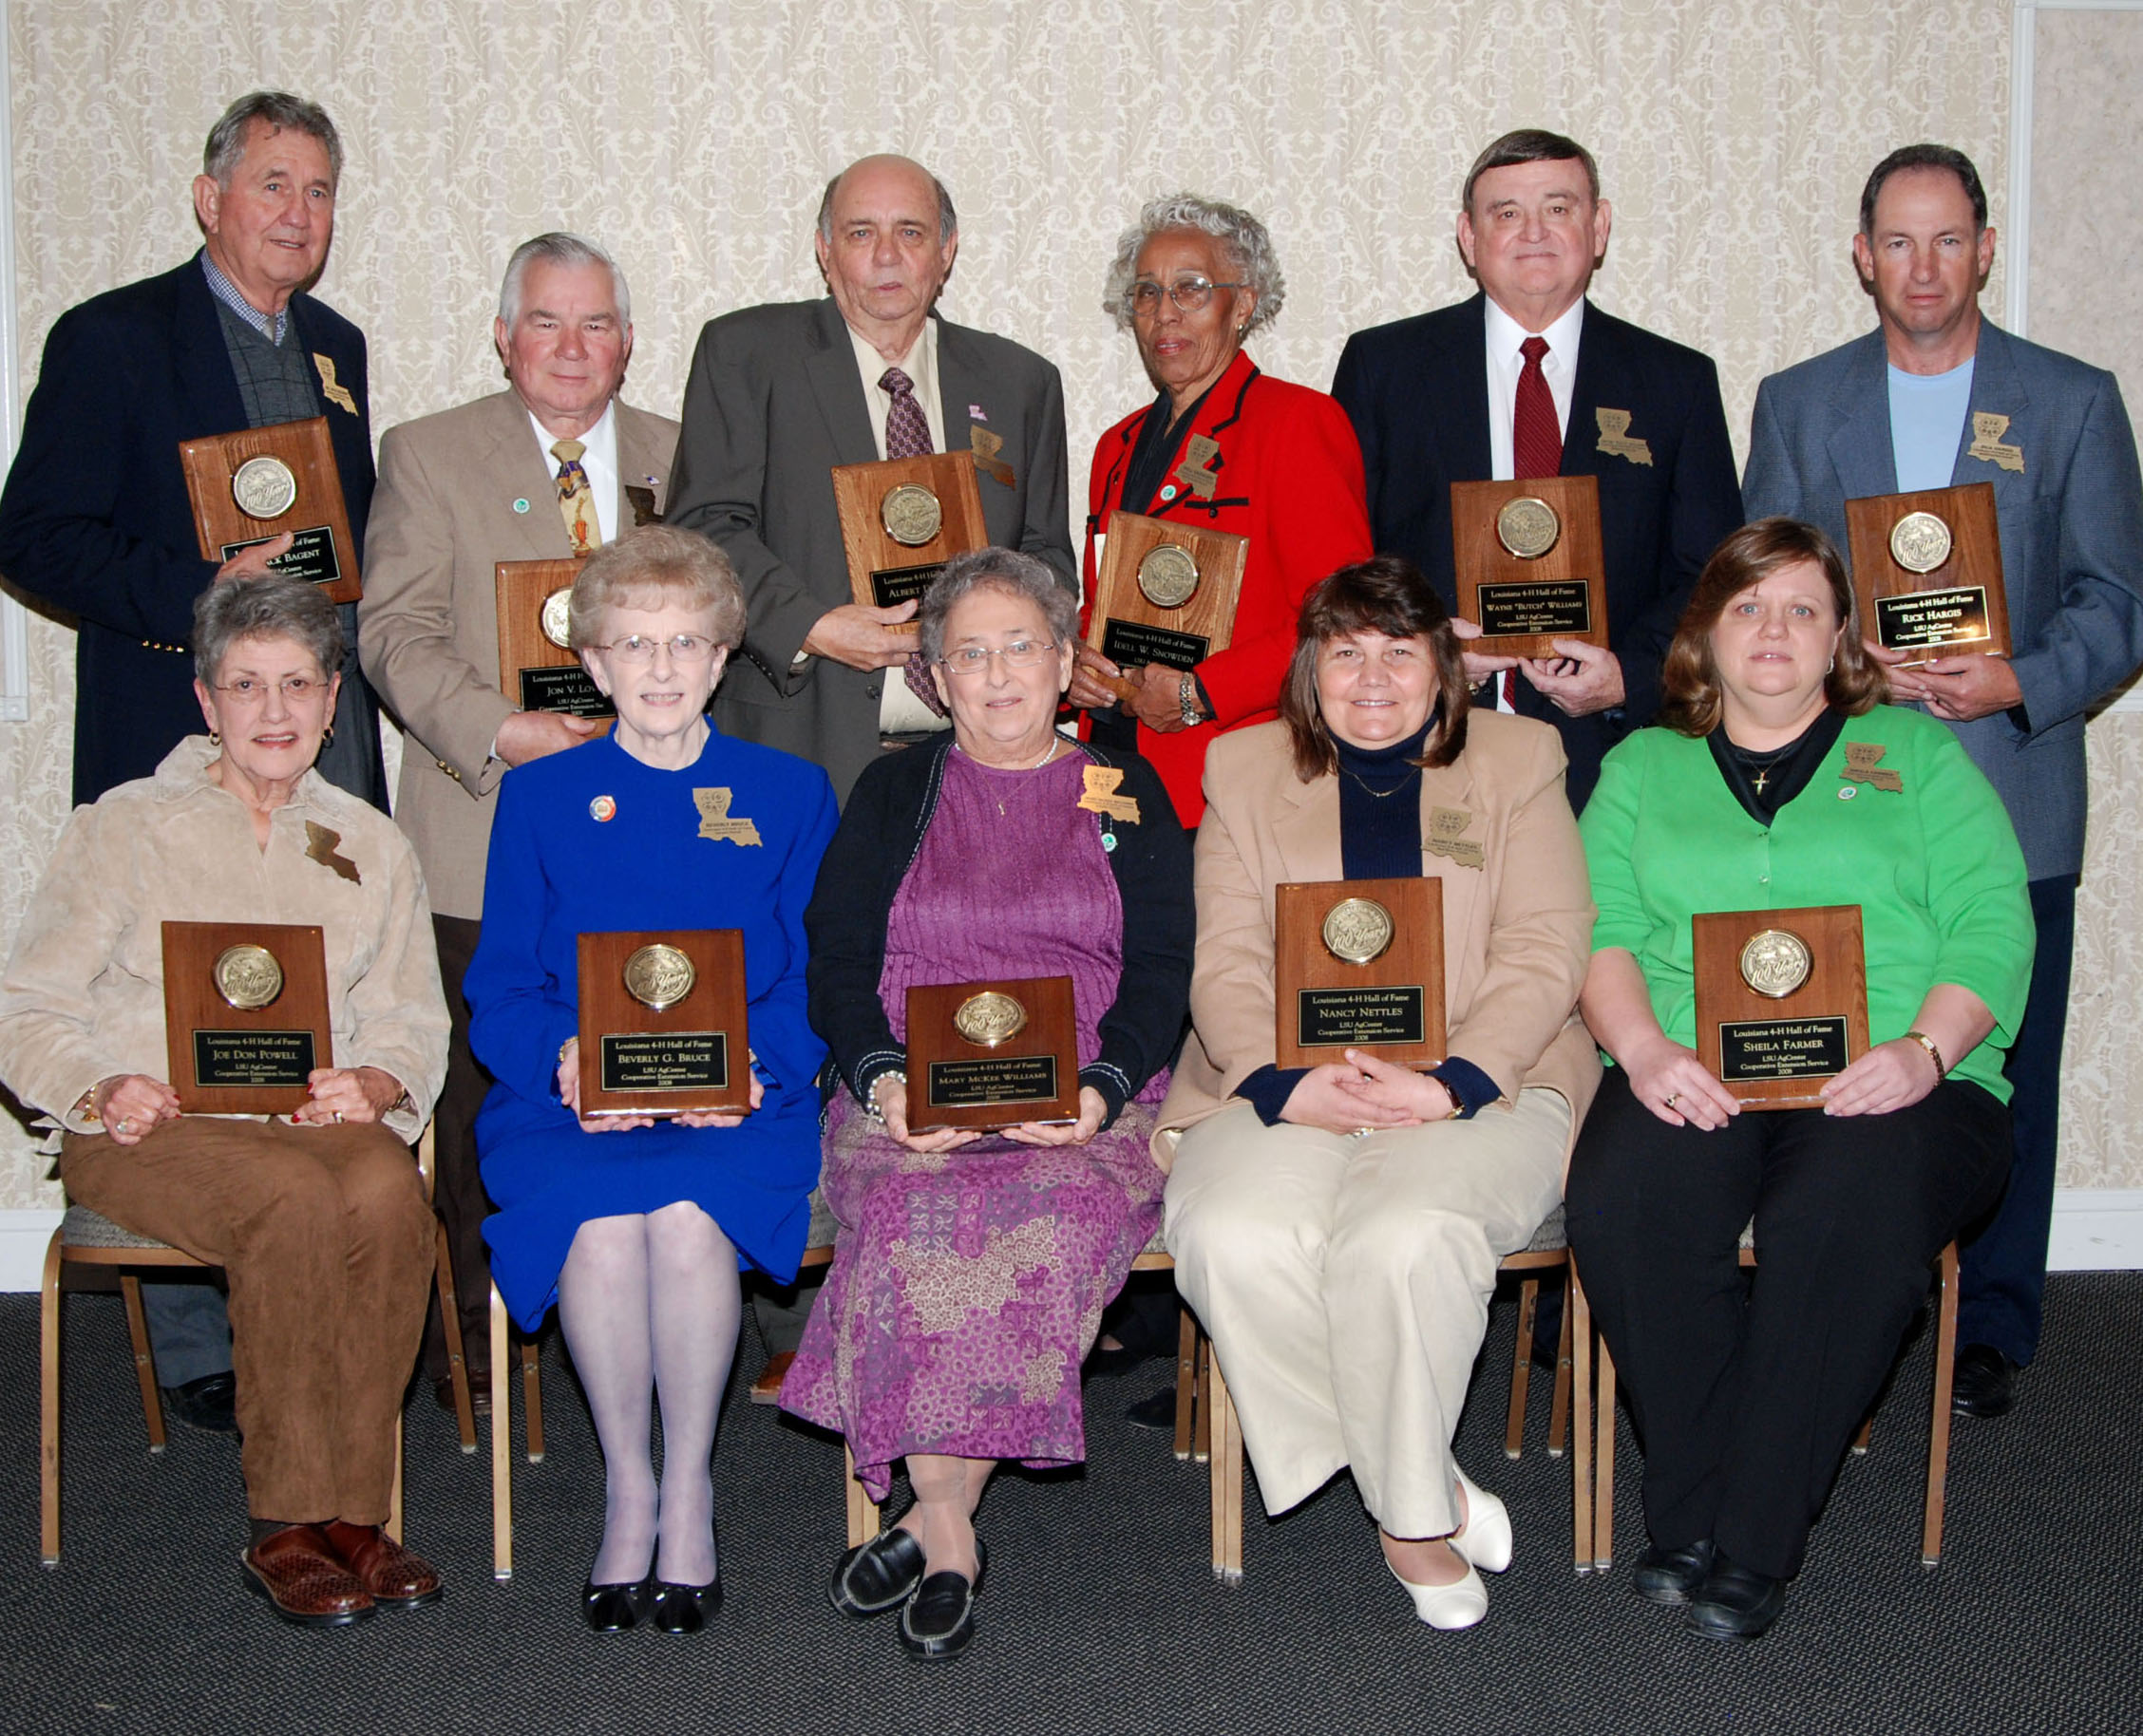 11 from Northwest Louisiana inducted into Louisiana 4-H Hall of Fame